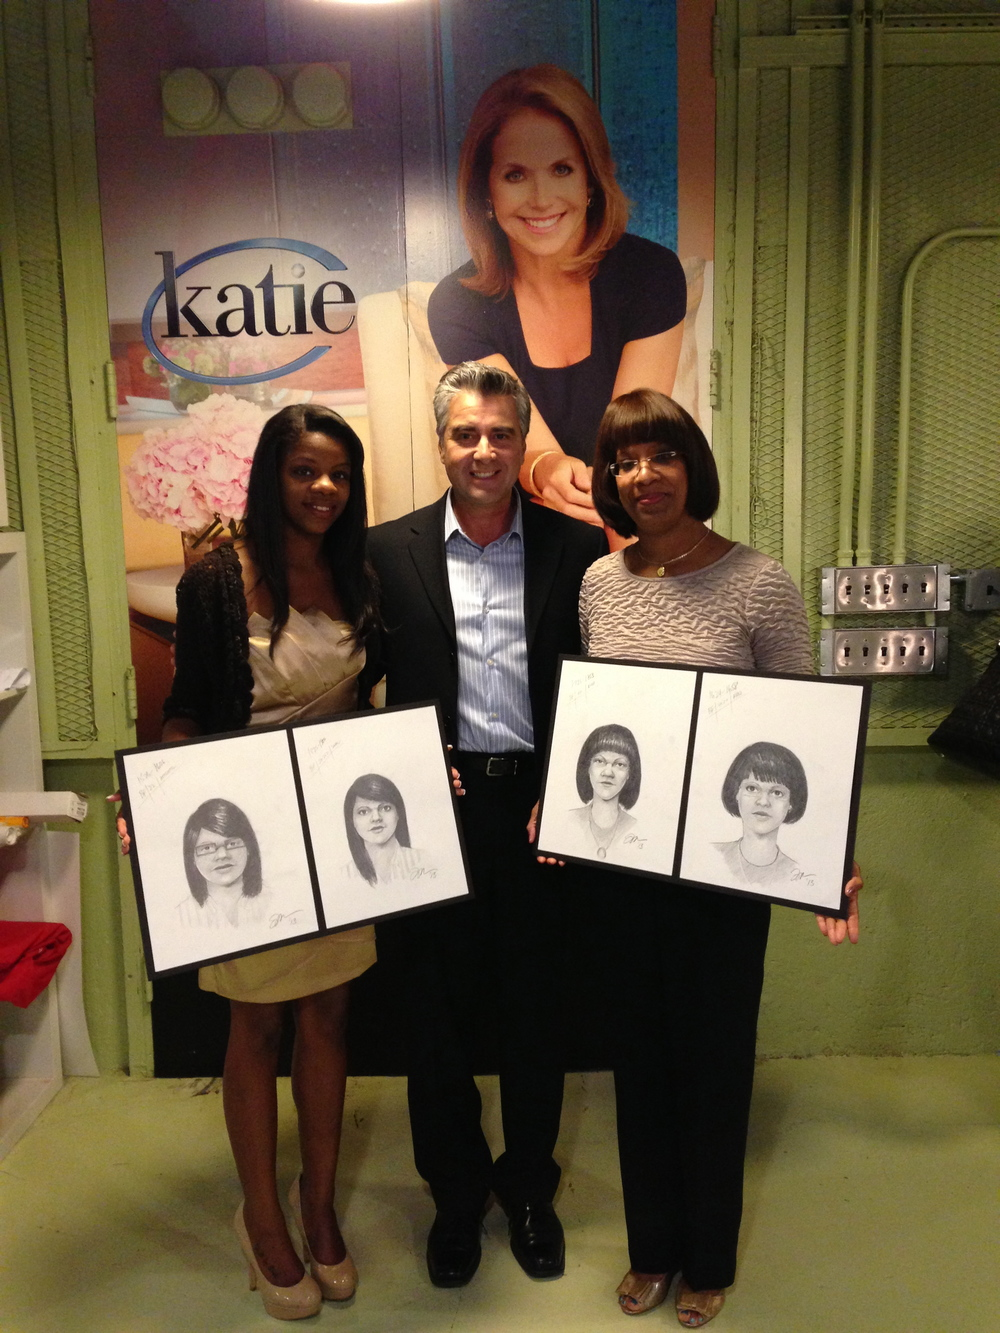 I had a great opportunity to be on the Katie Couric show and conduct my Perspective Sketches with a mother and her daughter for a special Mother's Day week show.